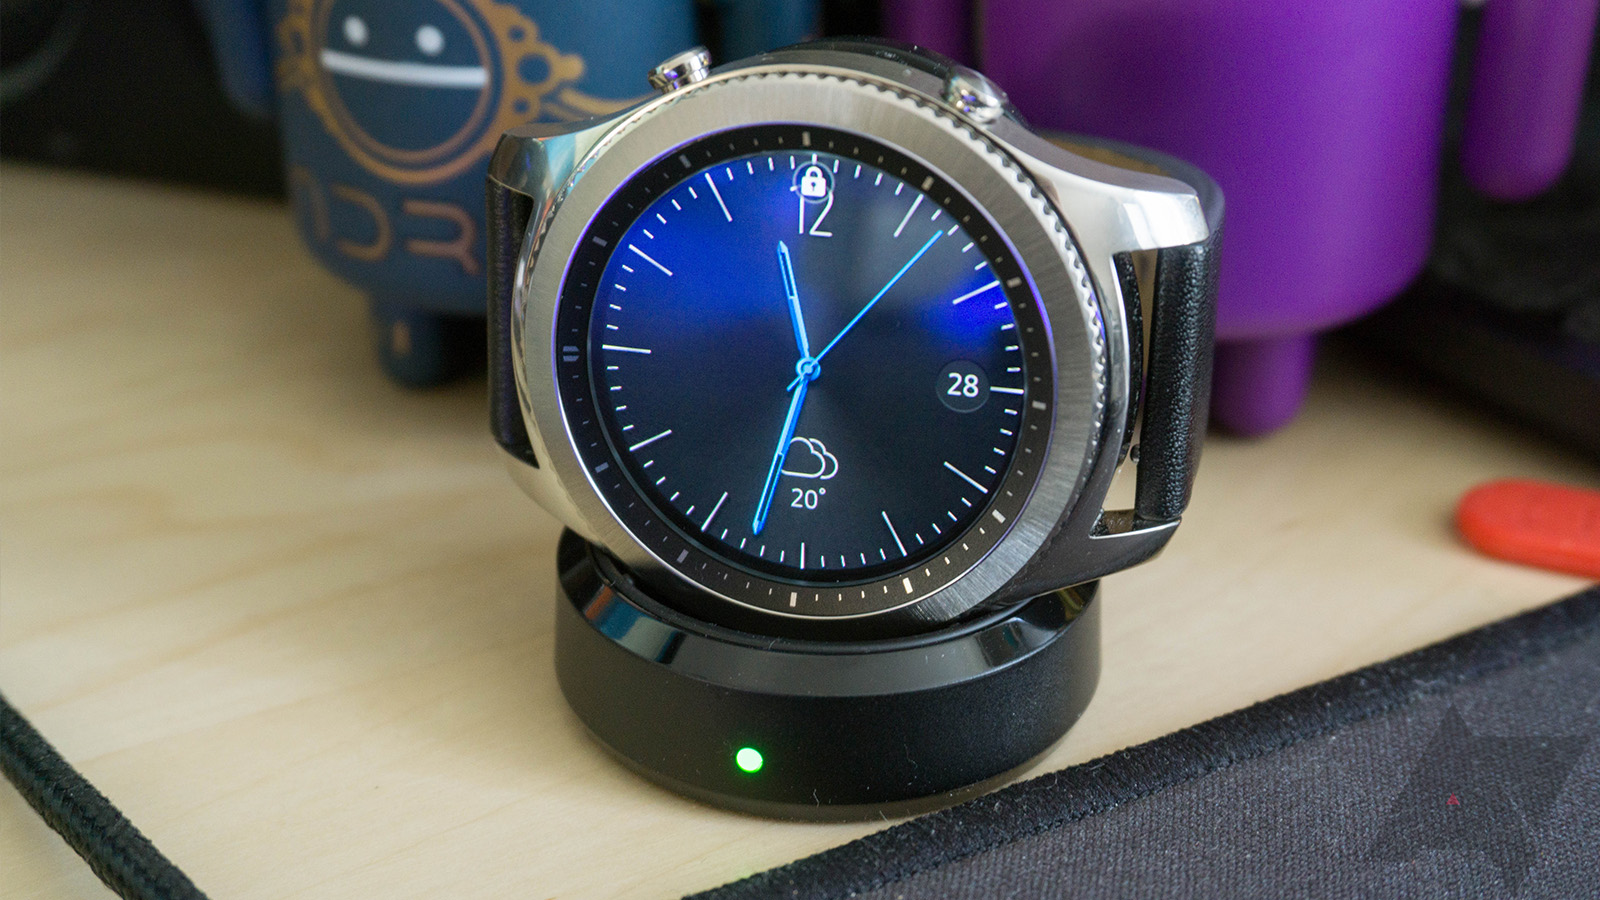 Samsung brings Galaxy Watch features to Gear S3 and Gear Sport